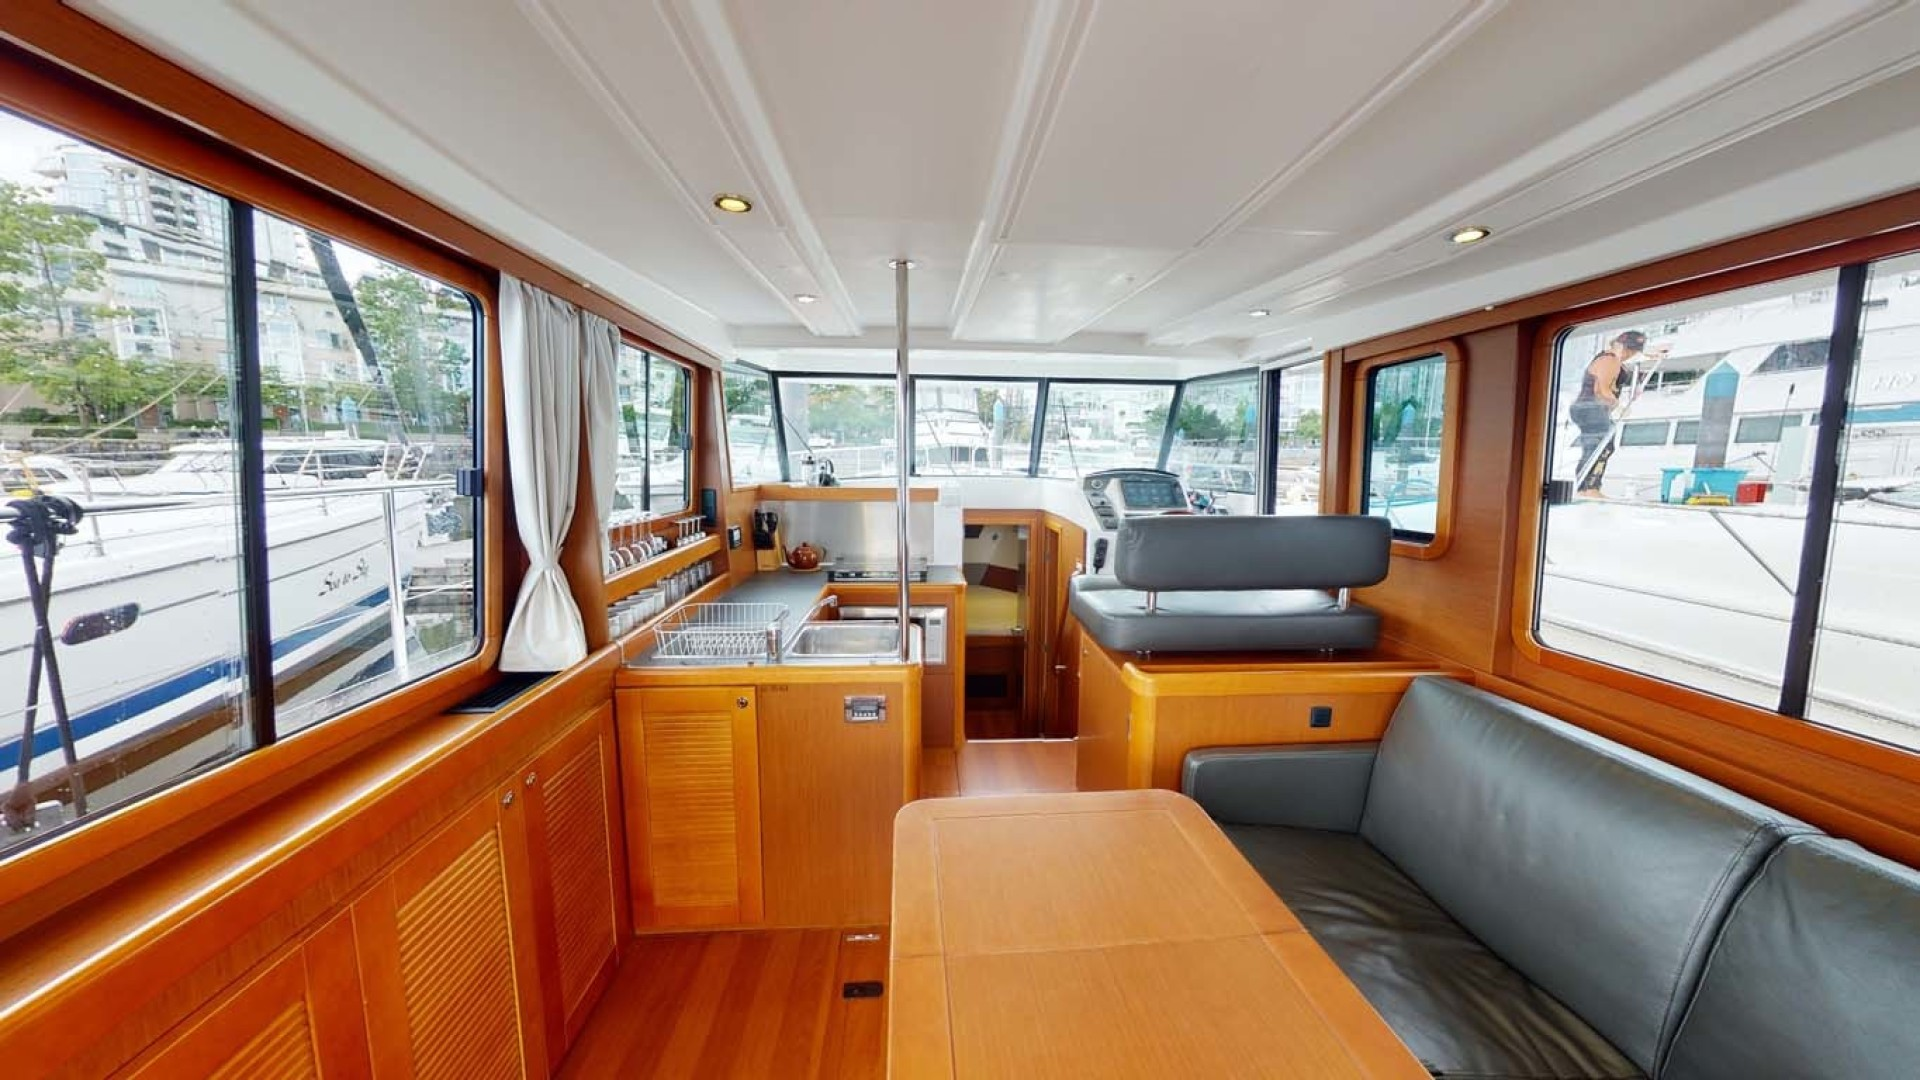 Beneteau-Swift Trawler 34 2015-Bon Sejour Vancouver, BC-Canada-Main Salon, Galley and Lower Helm-1441074 | Thumbnail